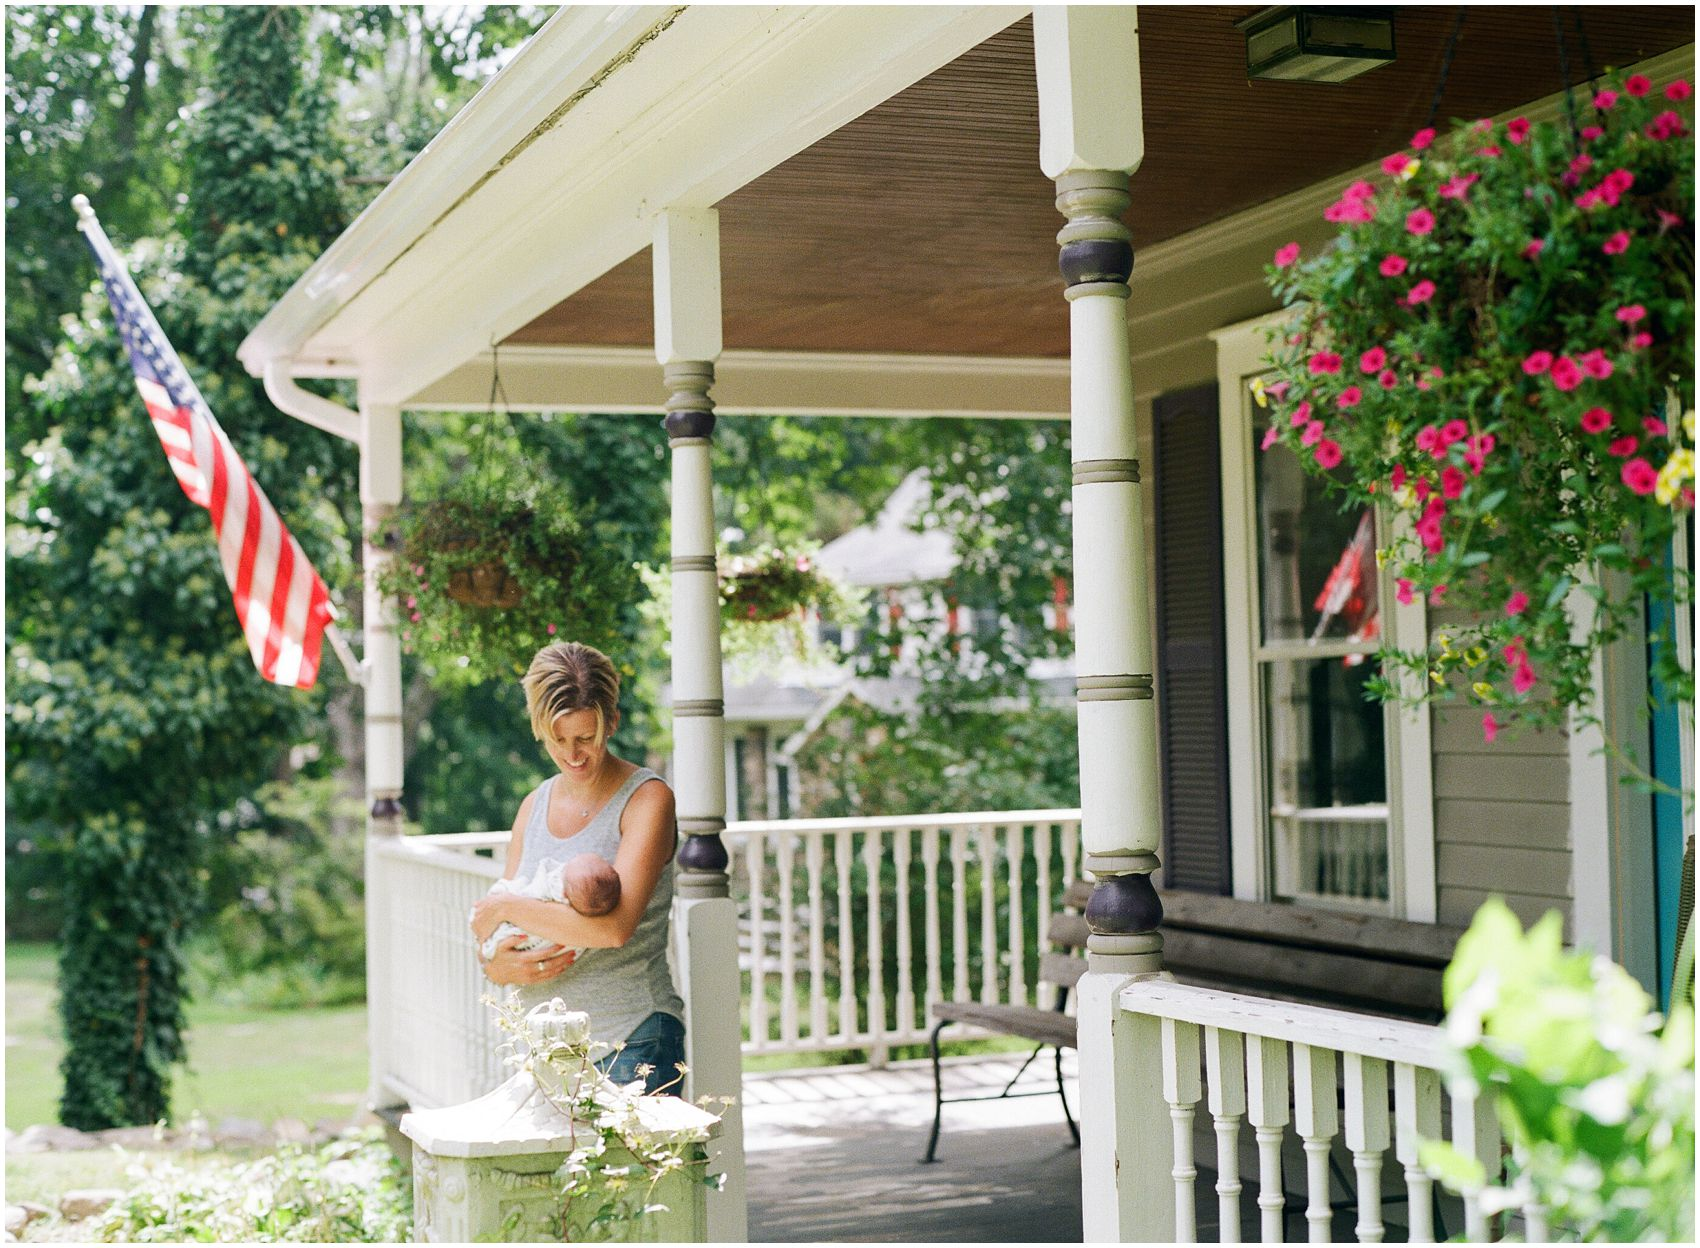 mom holding baby during newborn photo session outside by american flag